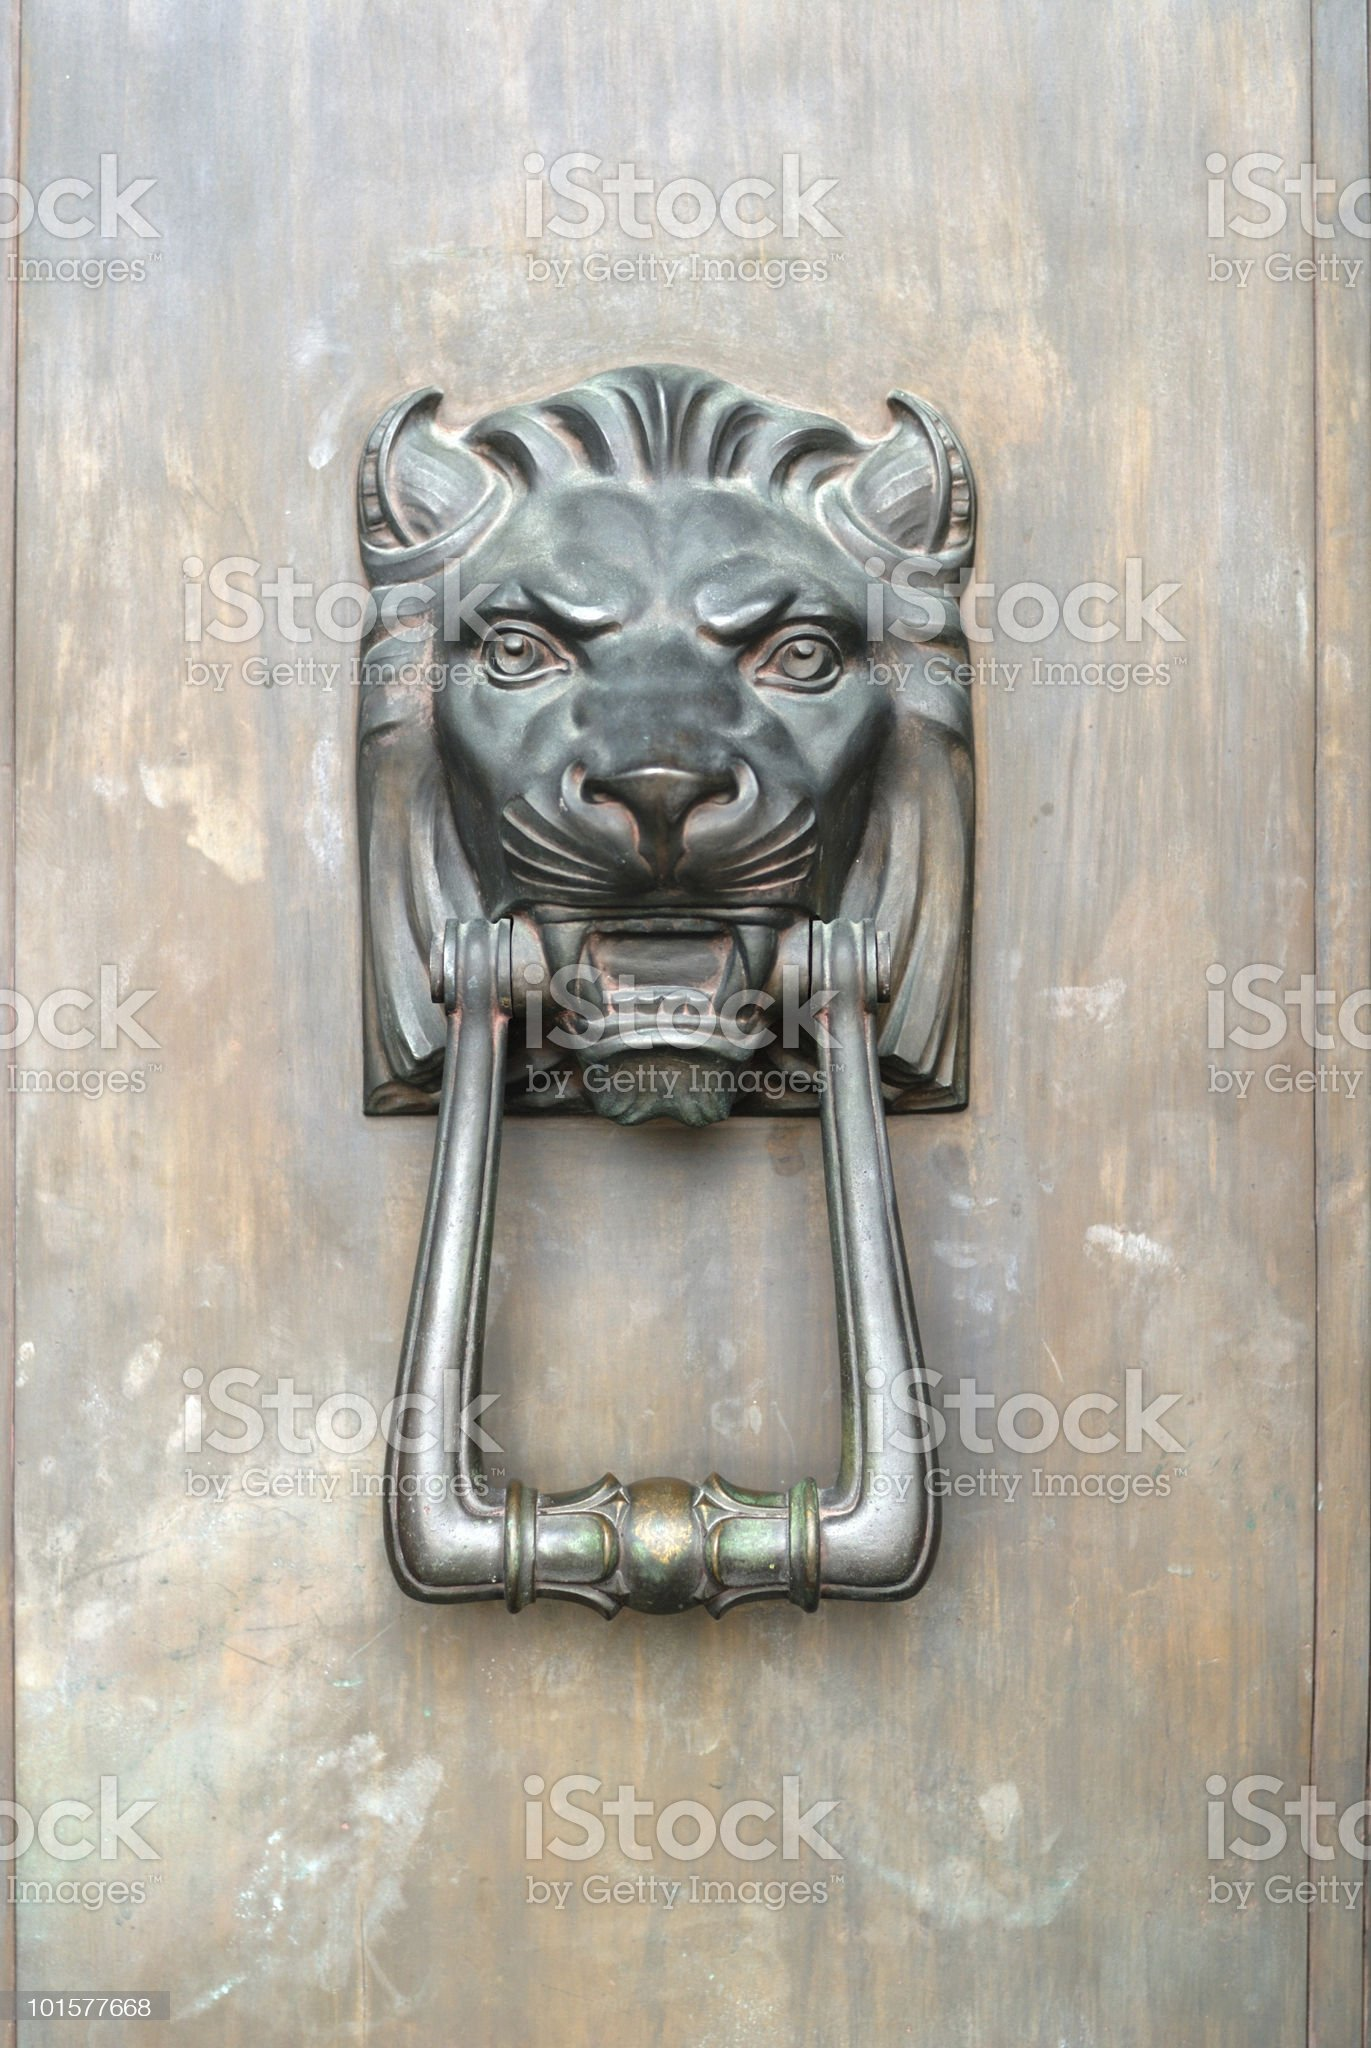 Door Knob royalty-free stock photo